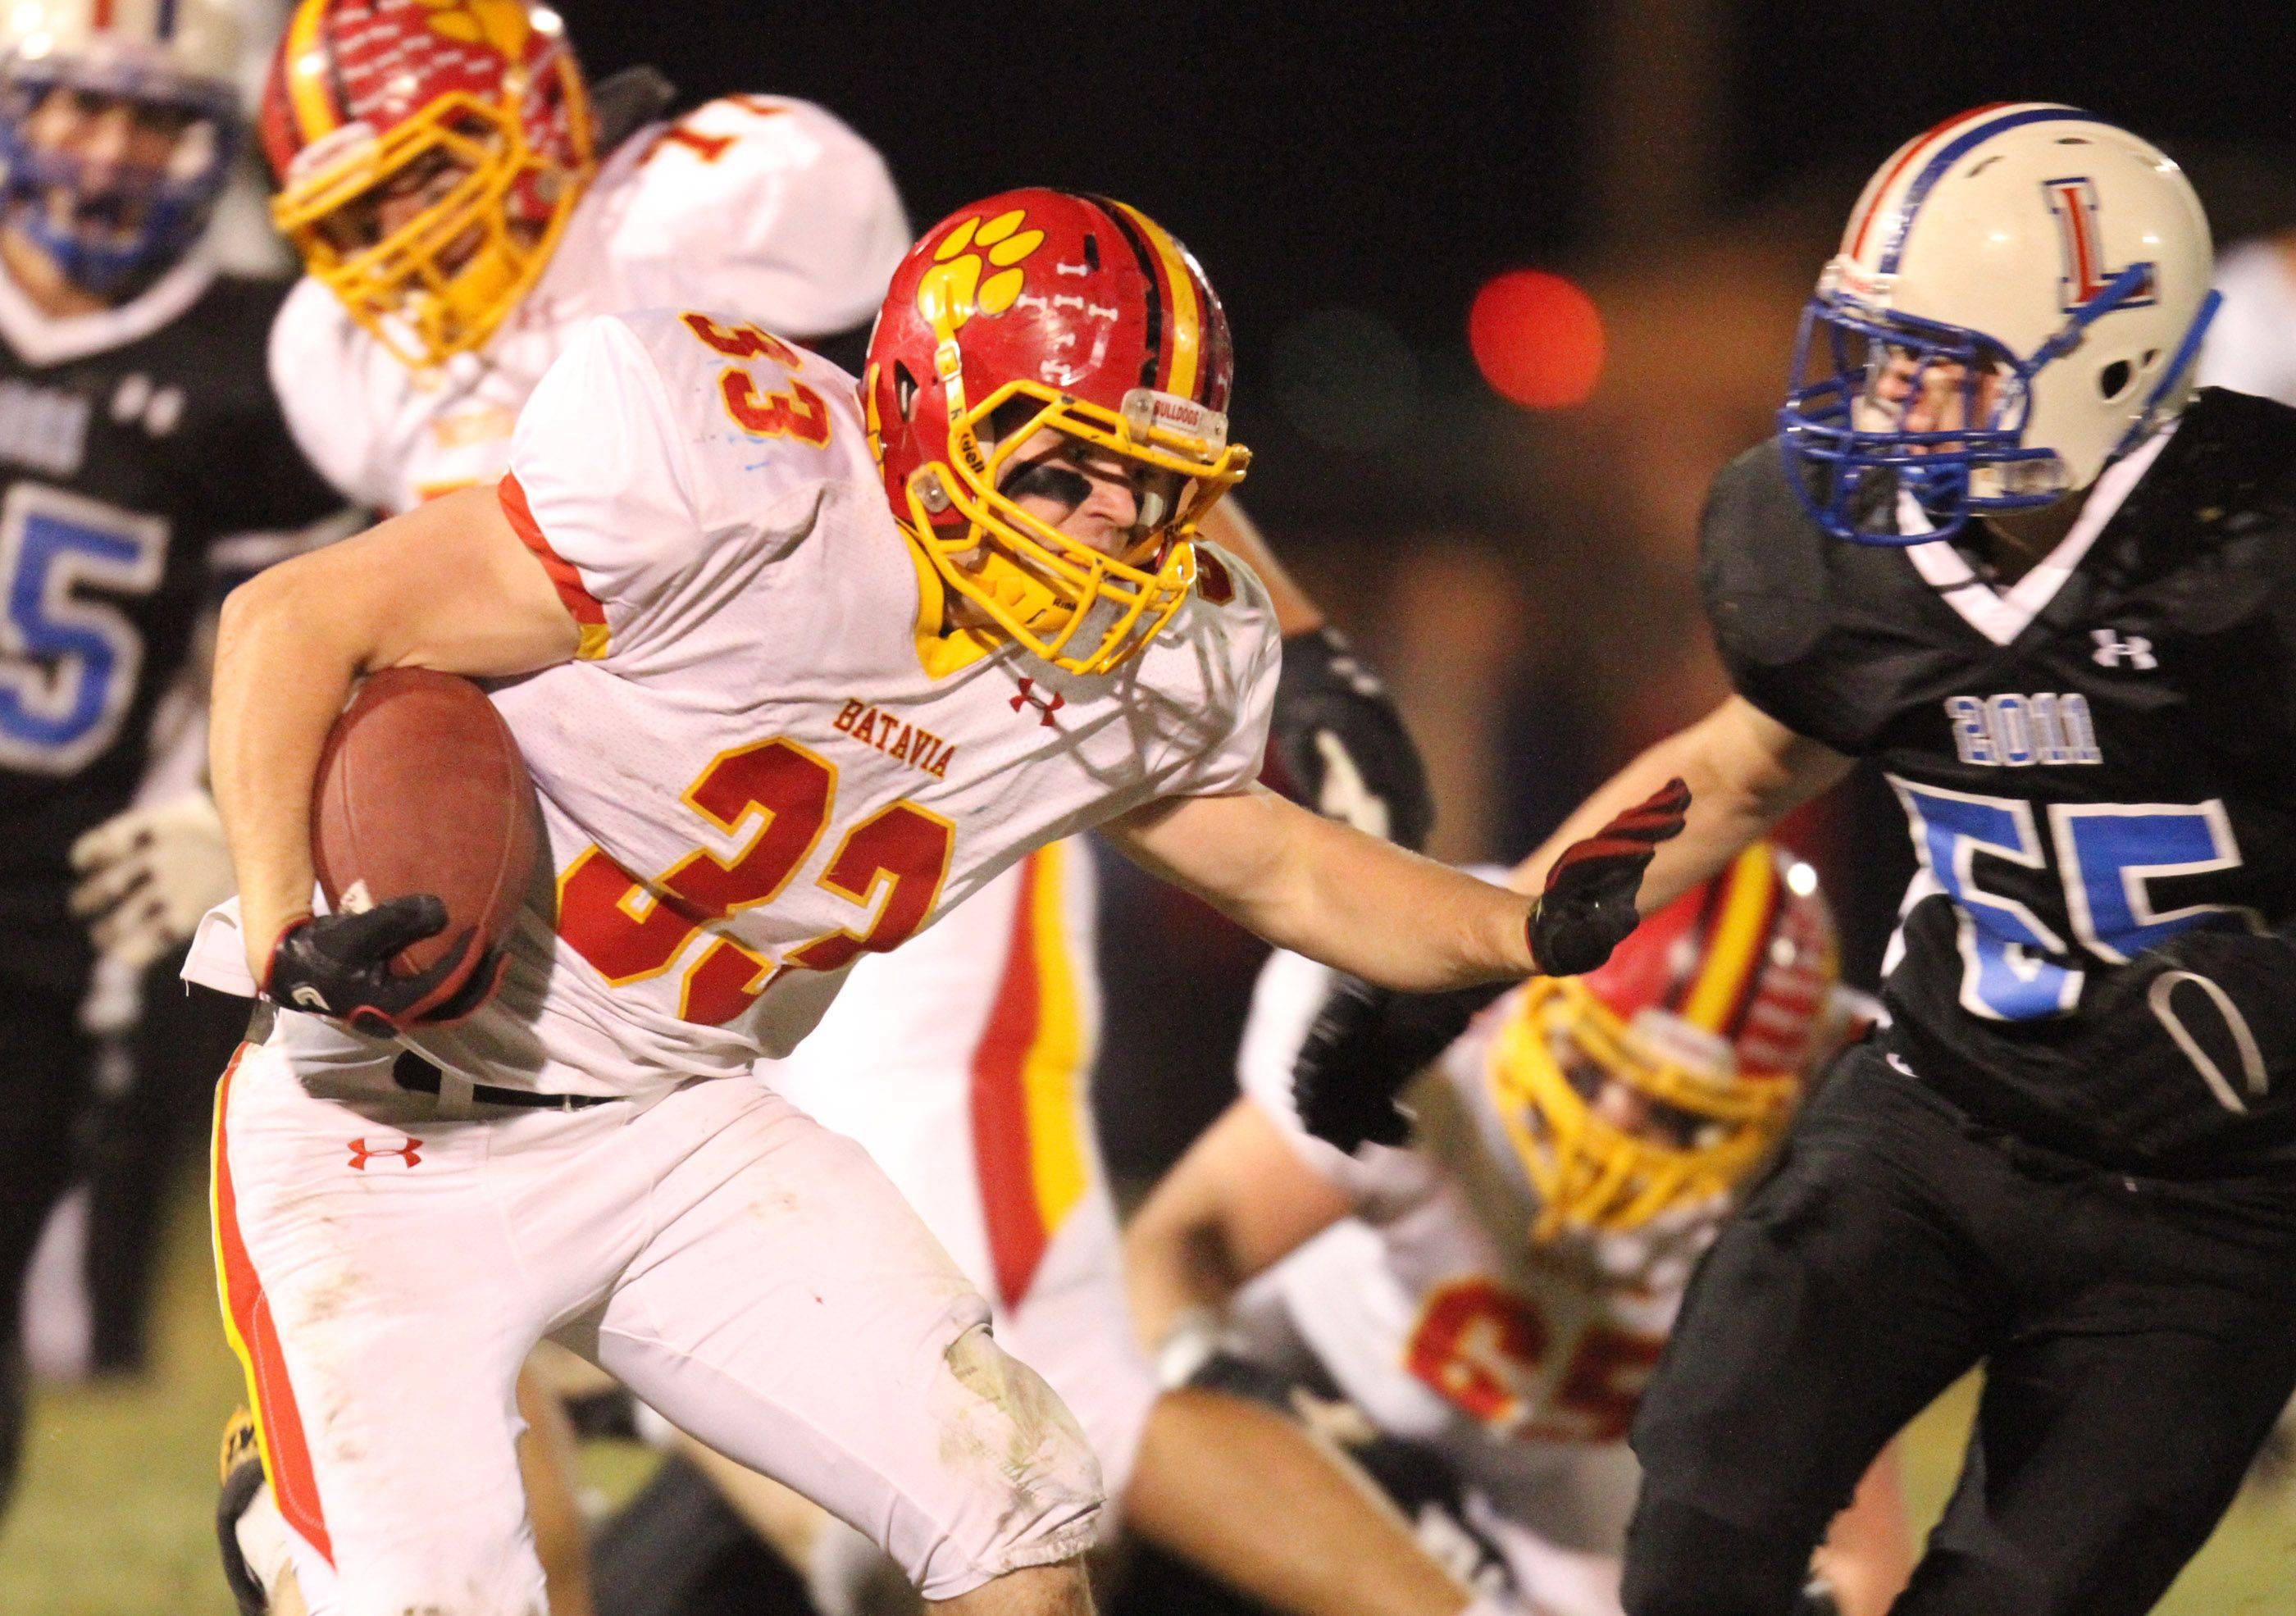 Batavia's Dom Guzaldo running the ball looks to dodge Lakes defender Alan Gomez during the first half at Lakes on Saturday, November 12.